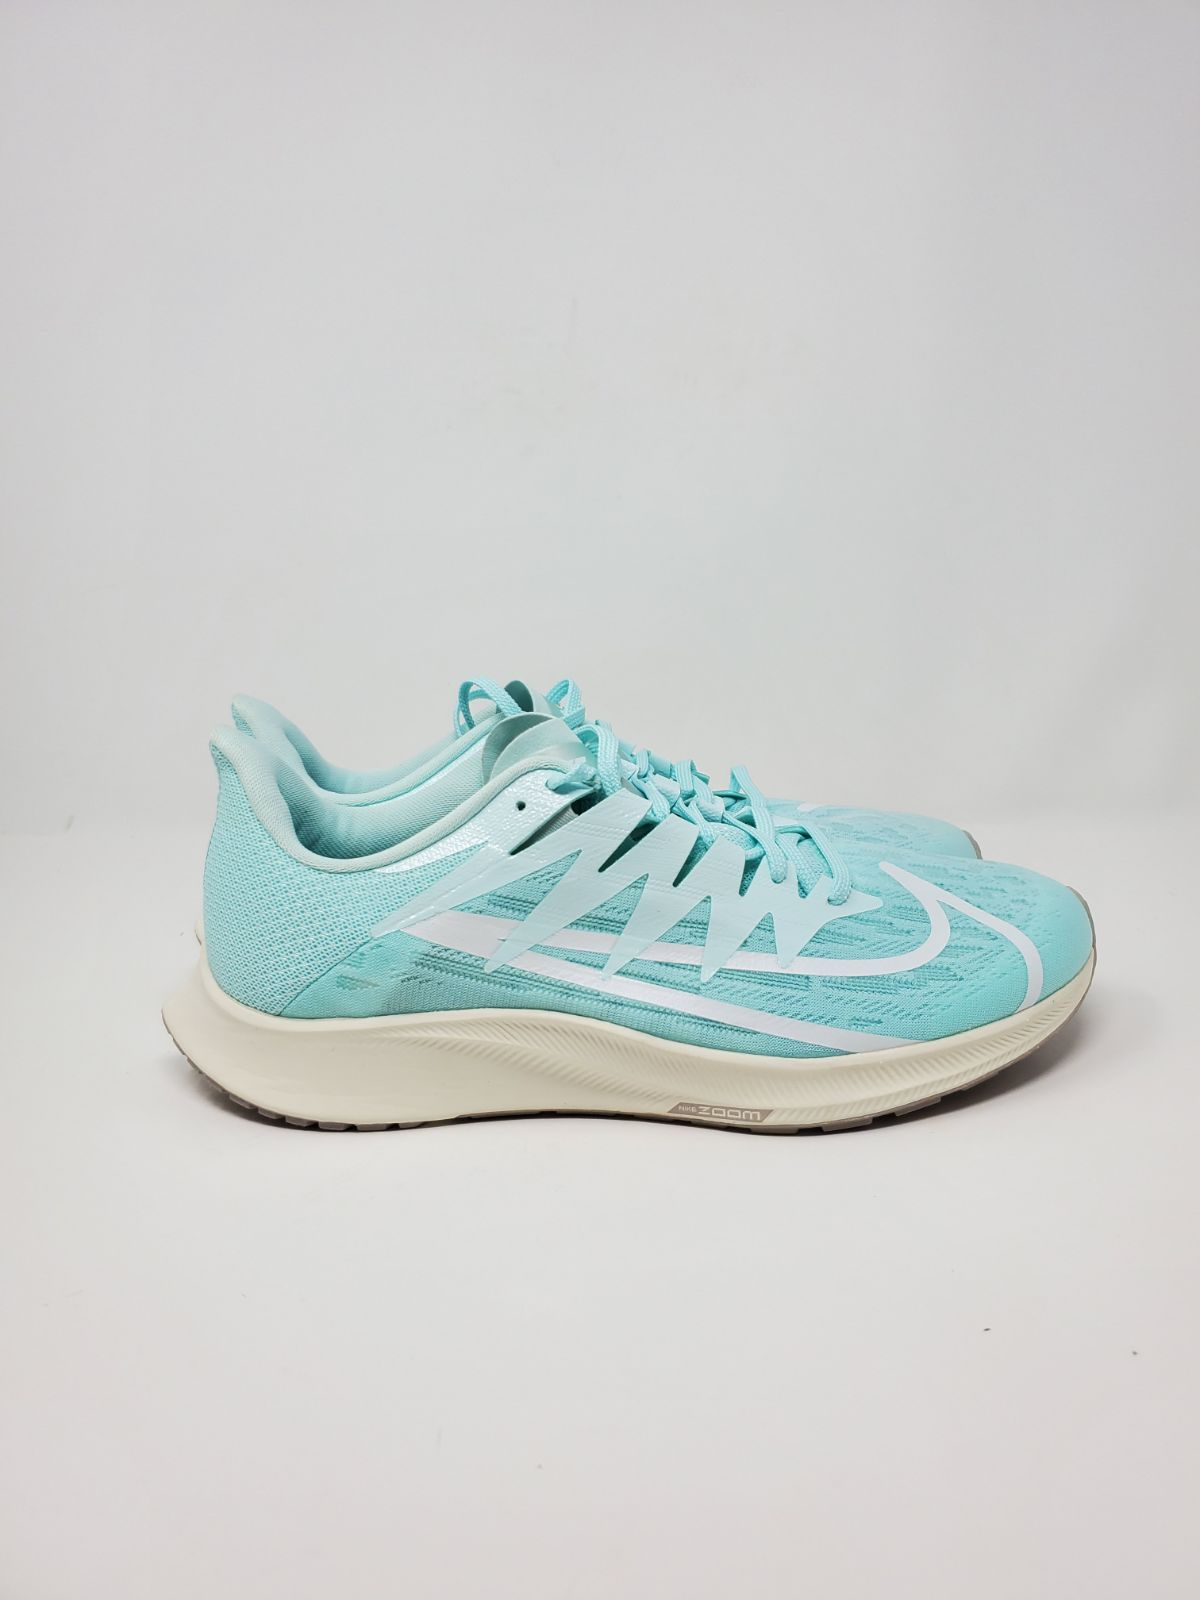 NEW Nike Womens Zoom Rival Fly  Excellen